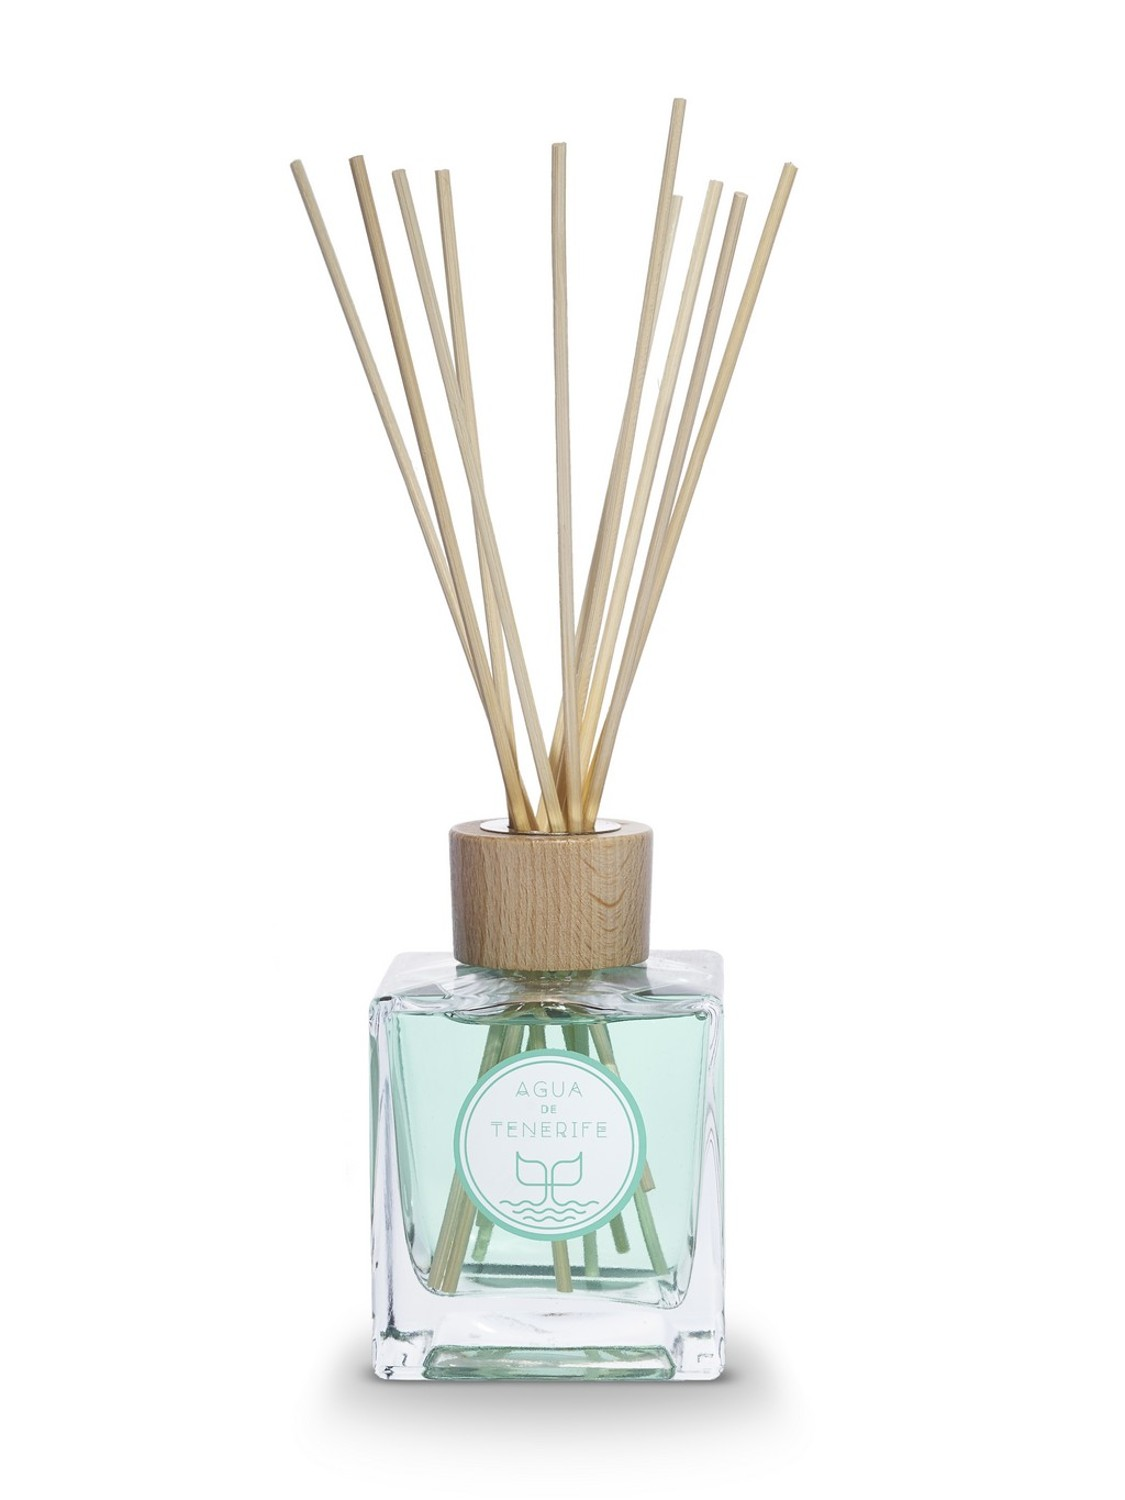 shop Agua de Tenerife  LAS FRAGANCIAS DE LA ISLA: Playa Blanca Air Freshner 250 ml. 